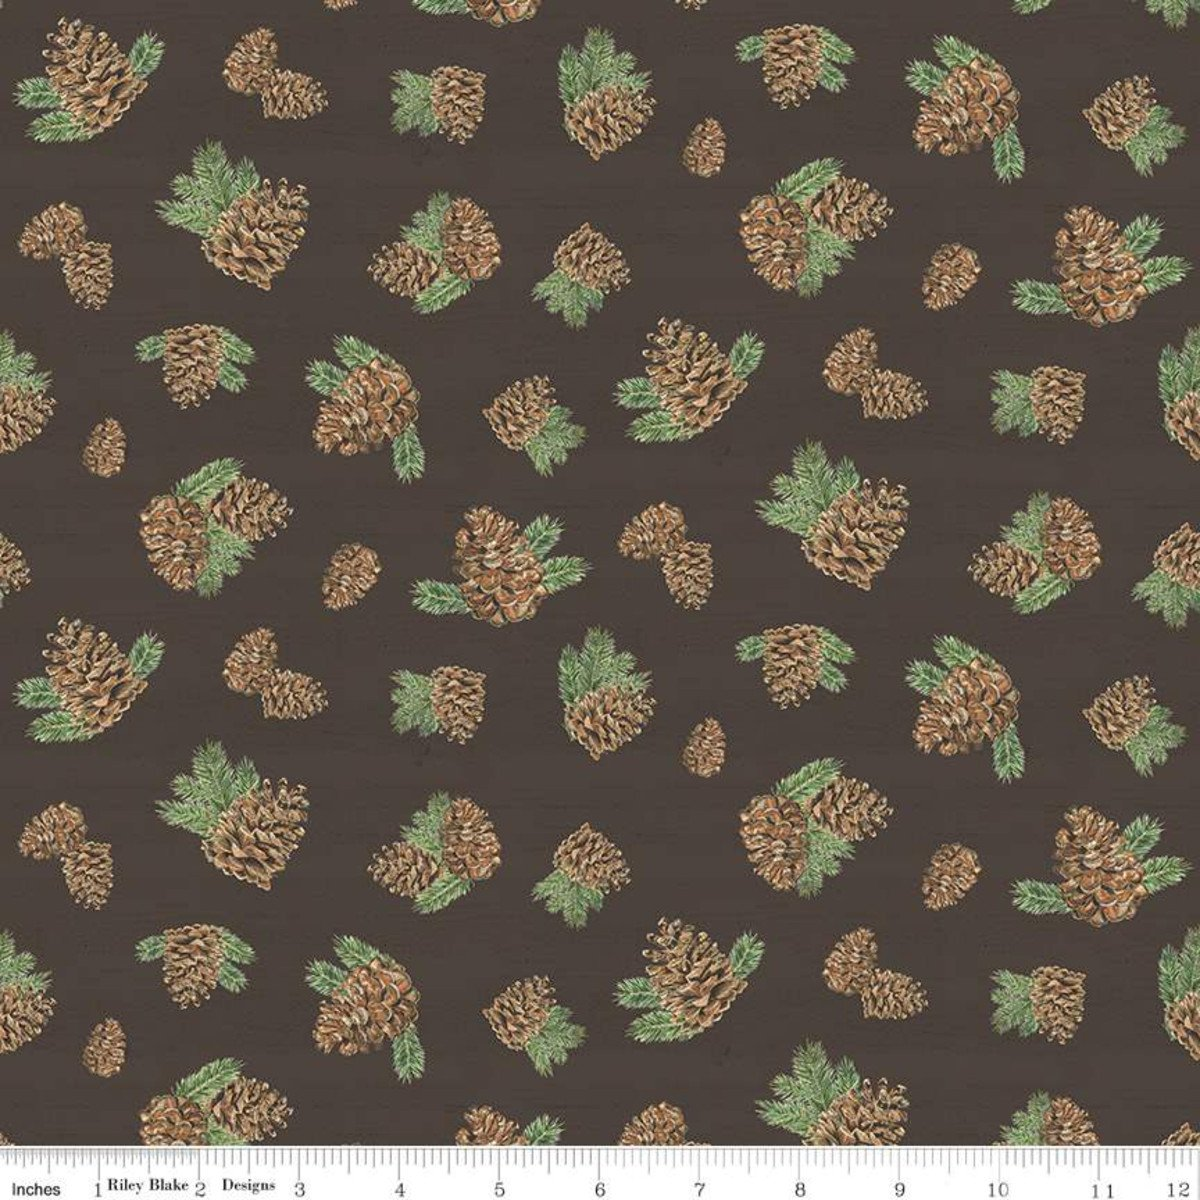 Send Me To The Woods C9274R Pinecones by Riley Blake